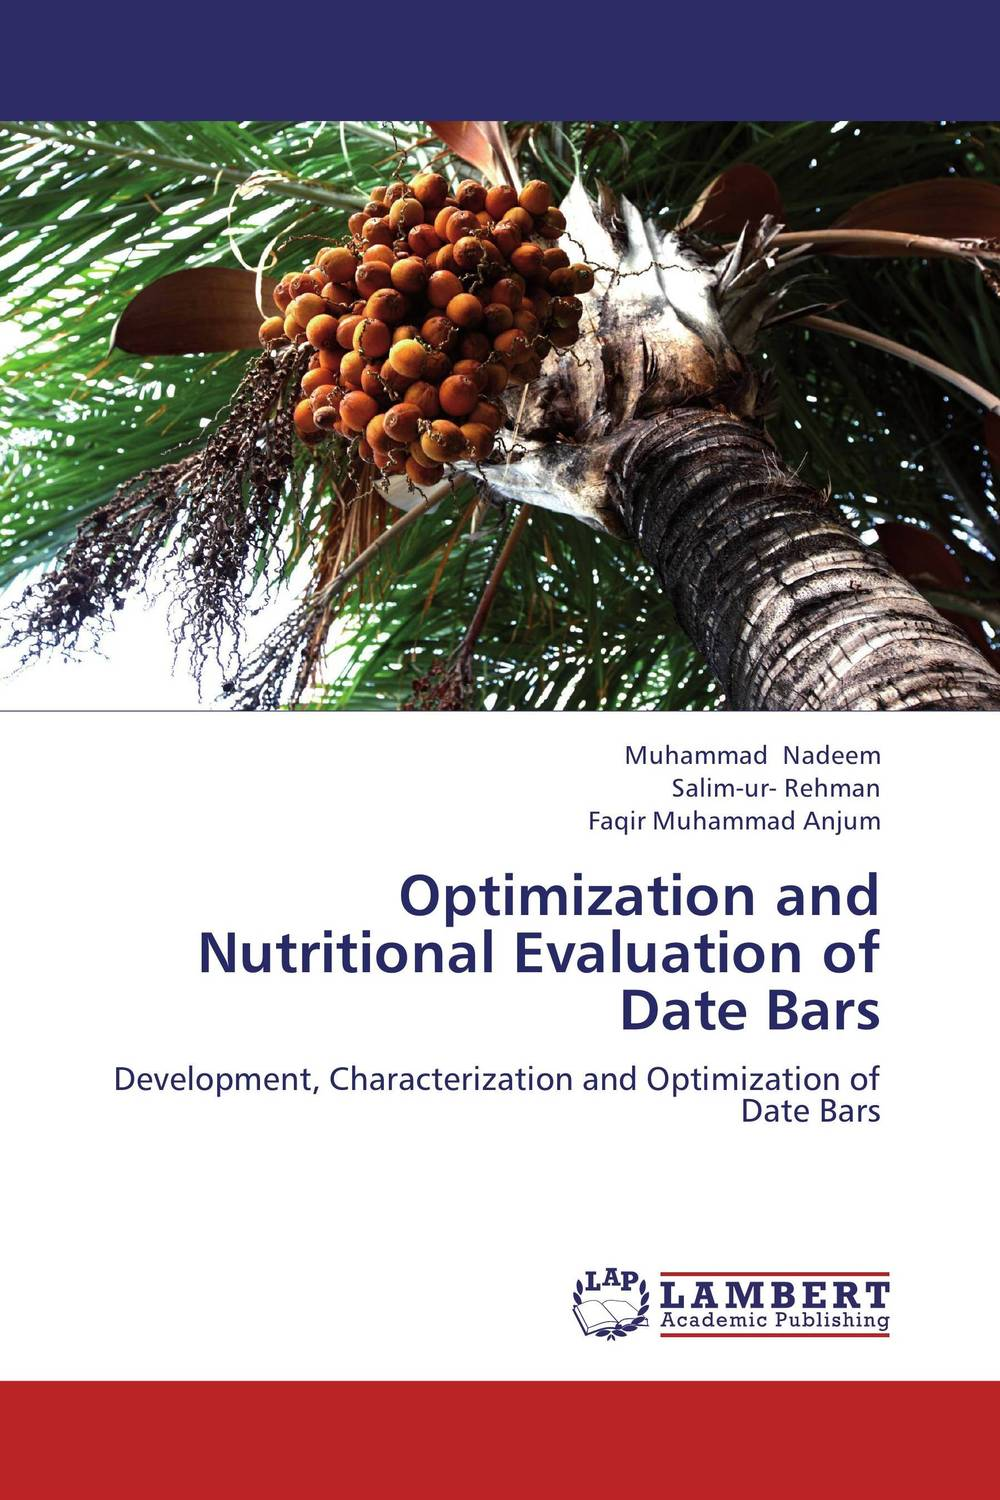 Optimization and Nutritional Evaluation of Date Bars raw revolution fruit nut and seed superfood bars cranberry almond coconut 1 6 oz bars 12 count